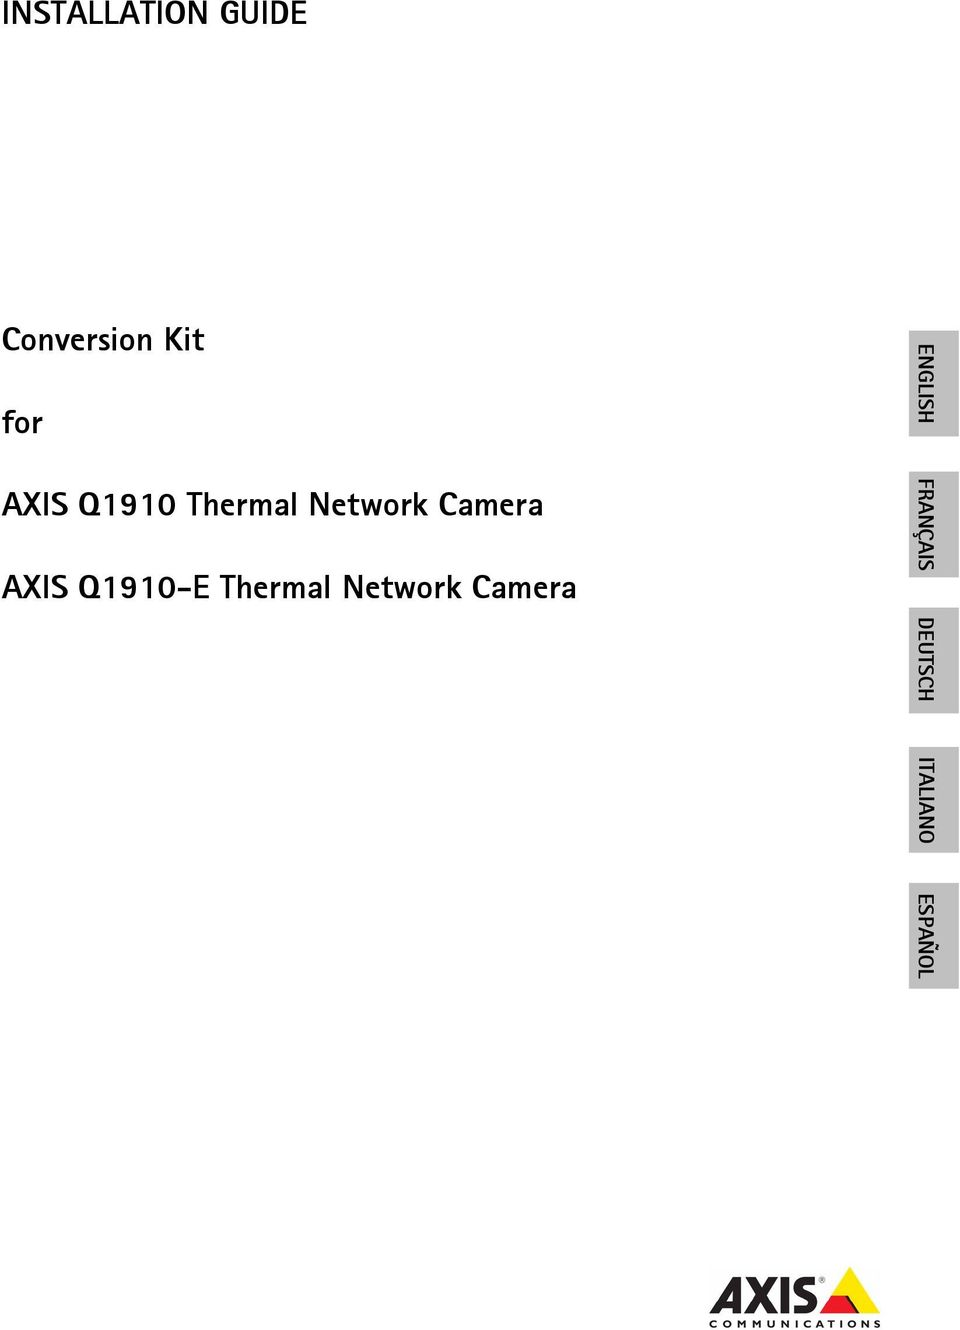 AXIS Q1910-E Thermal Network Camera